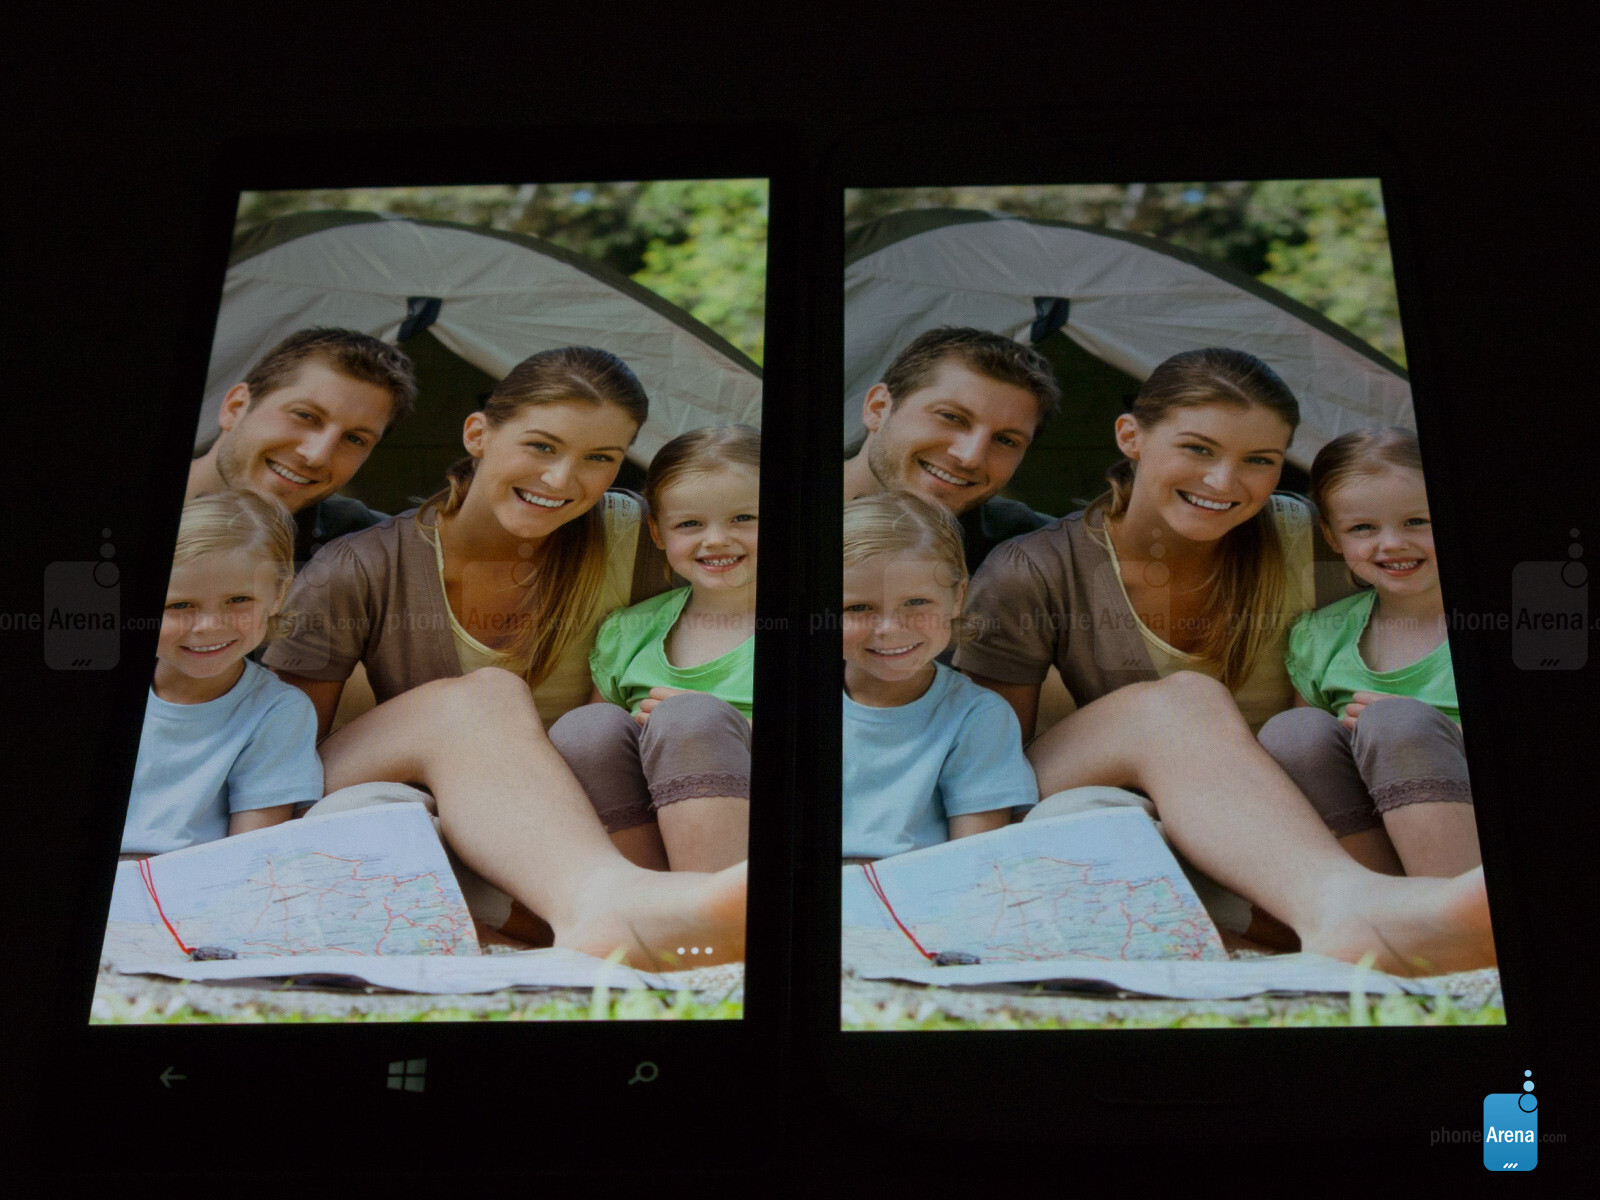 Viewing angles - Nokia Lumia Icon (left) and Samsung Galaxy S4 (right)